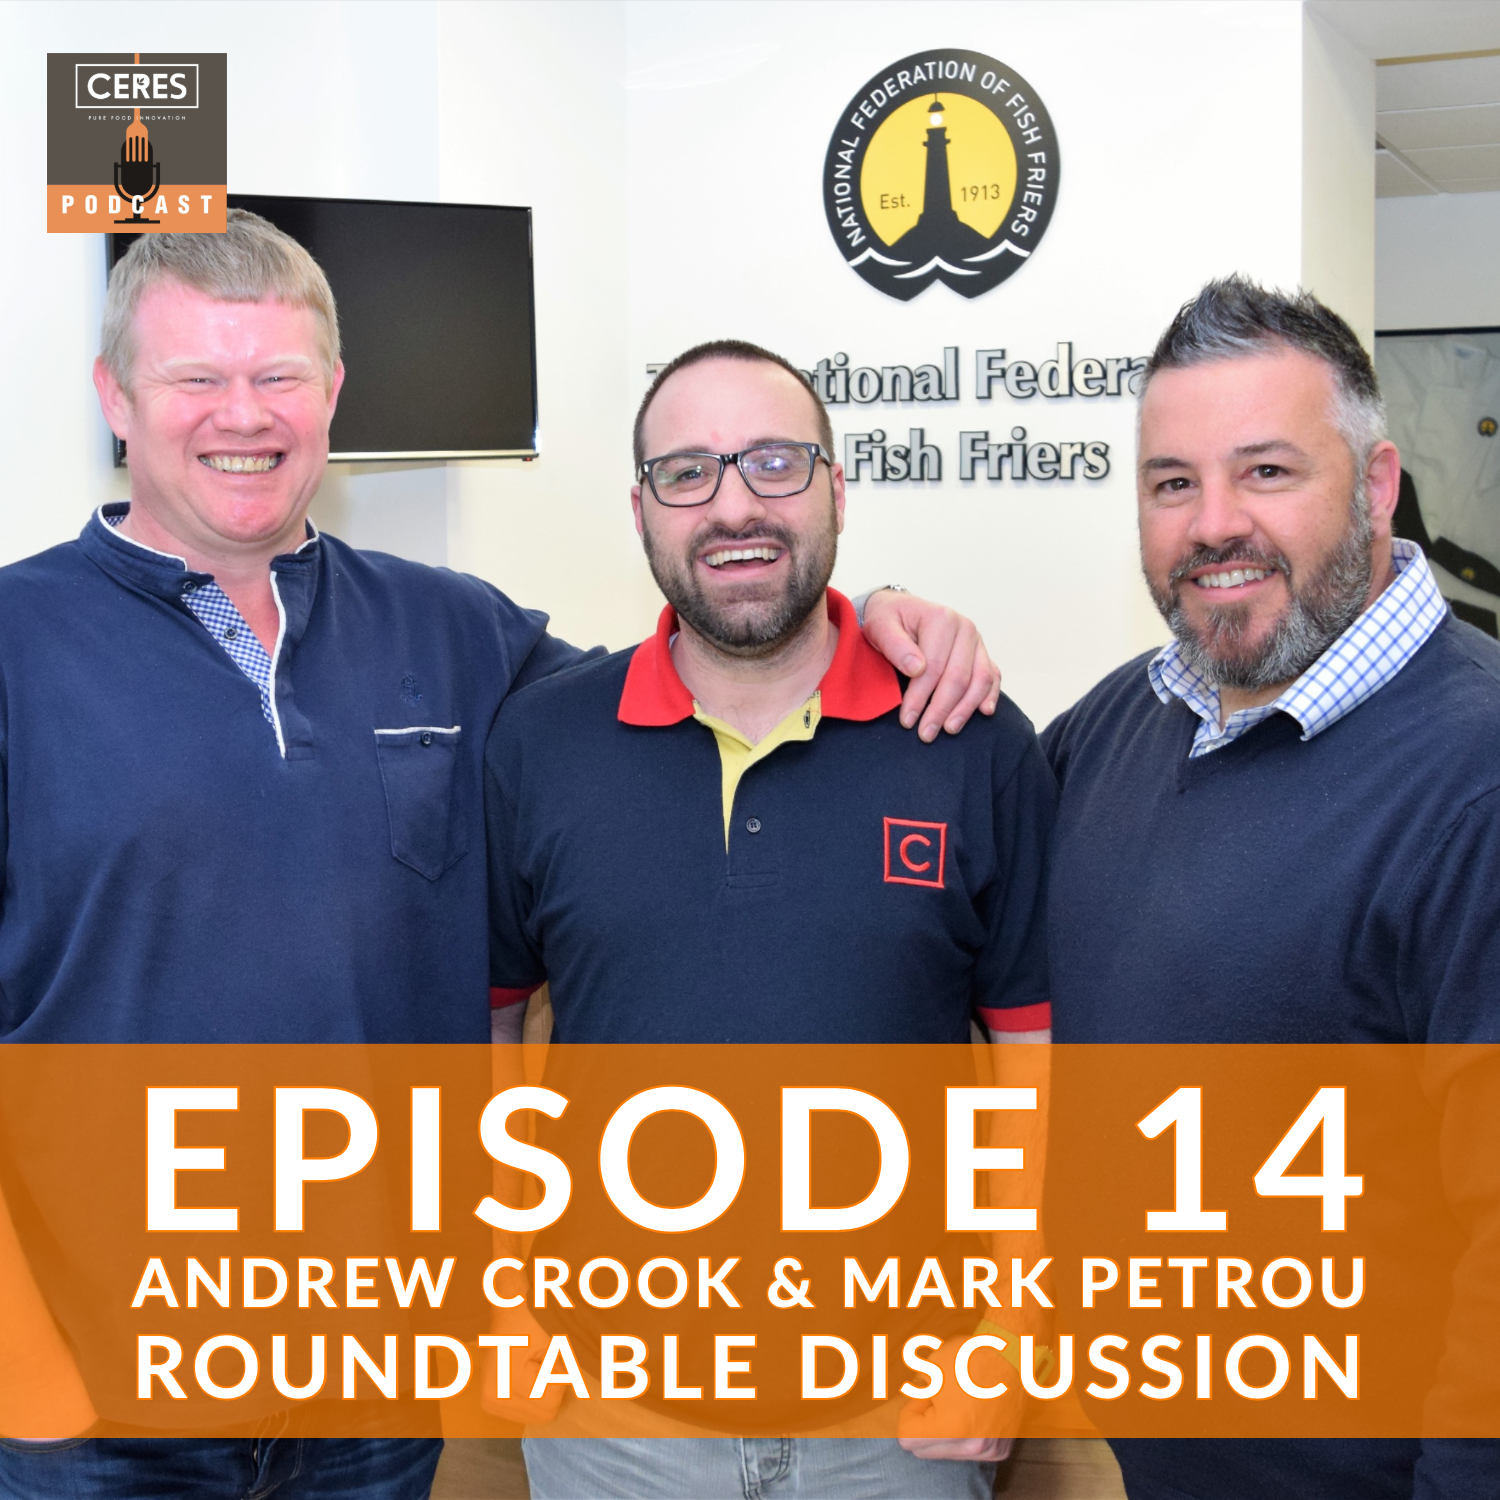 Roundtable Discussion Episode cover